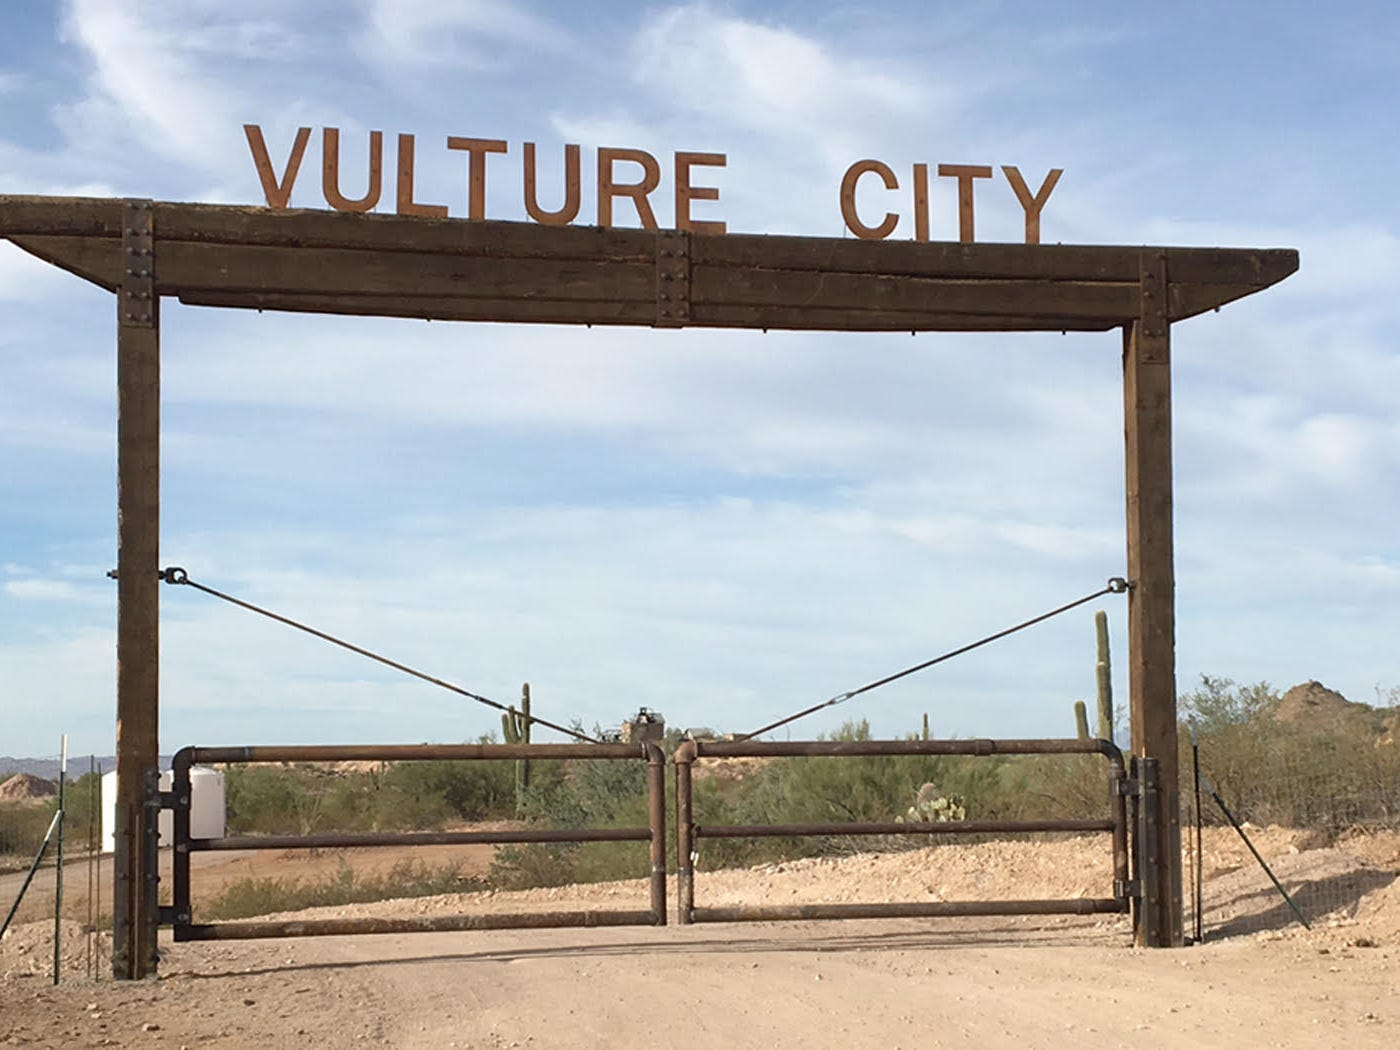 Vulture City ghost town | See the reason Wickenburg exists when you visit the ghost town of Vulture City.  Walk the graveled half-mile path to see the collection of weathered historic buildings surrounded by old mining equipment such as the stamp mill and headframe. Guided tours are offered at 10 a.m. Saturdays and Sundays. | Details: 877-425-9229, www.vultureminetours.com.